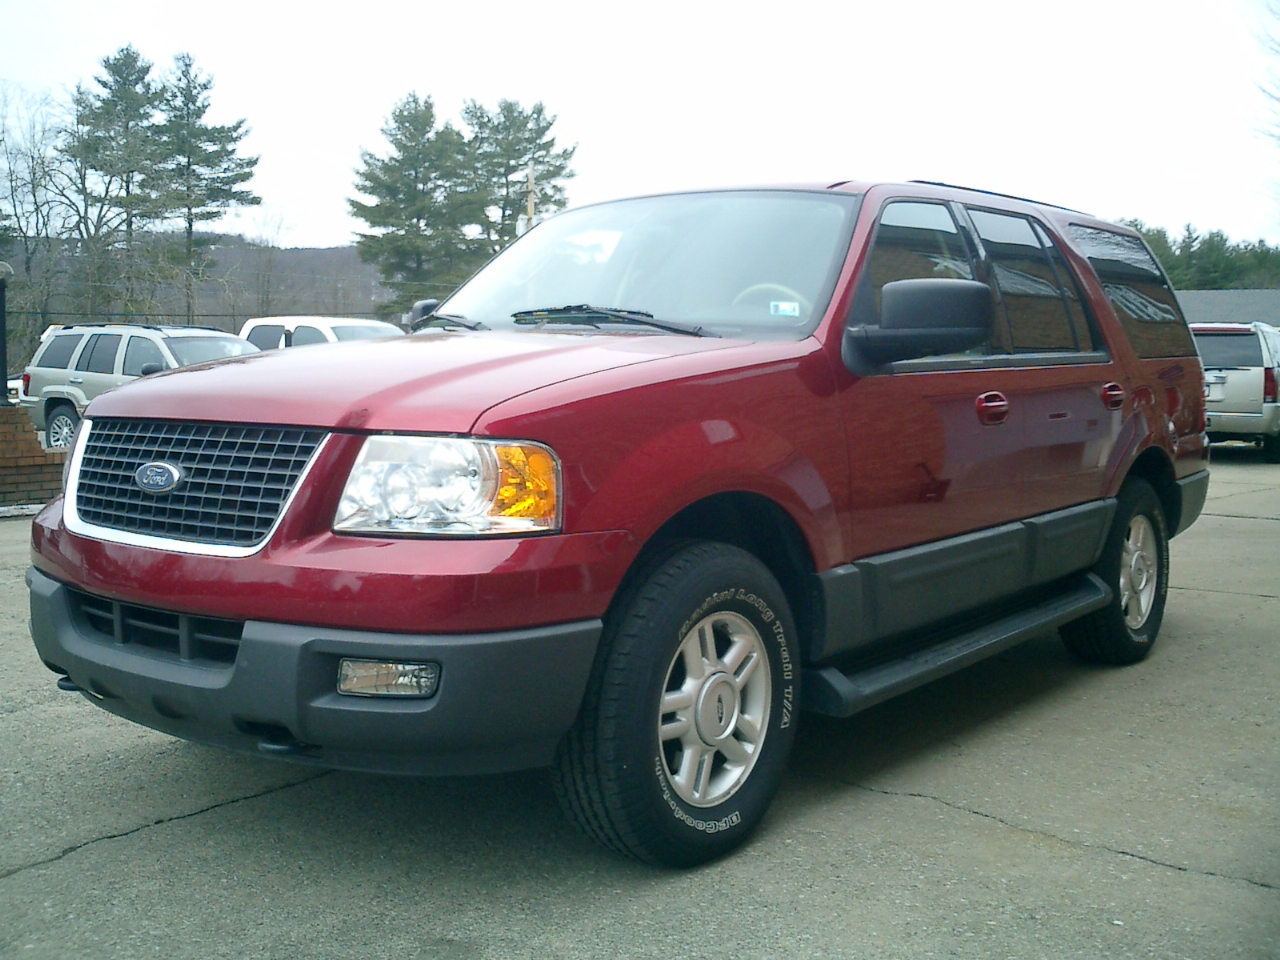 2004 Ford Expedition #7